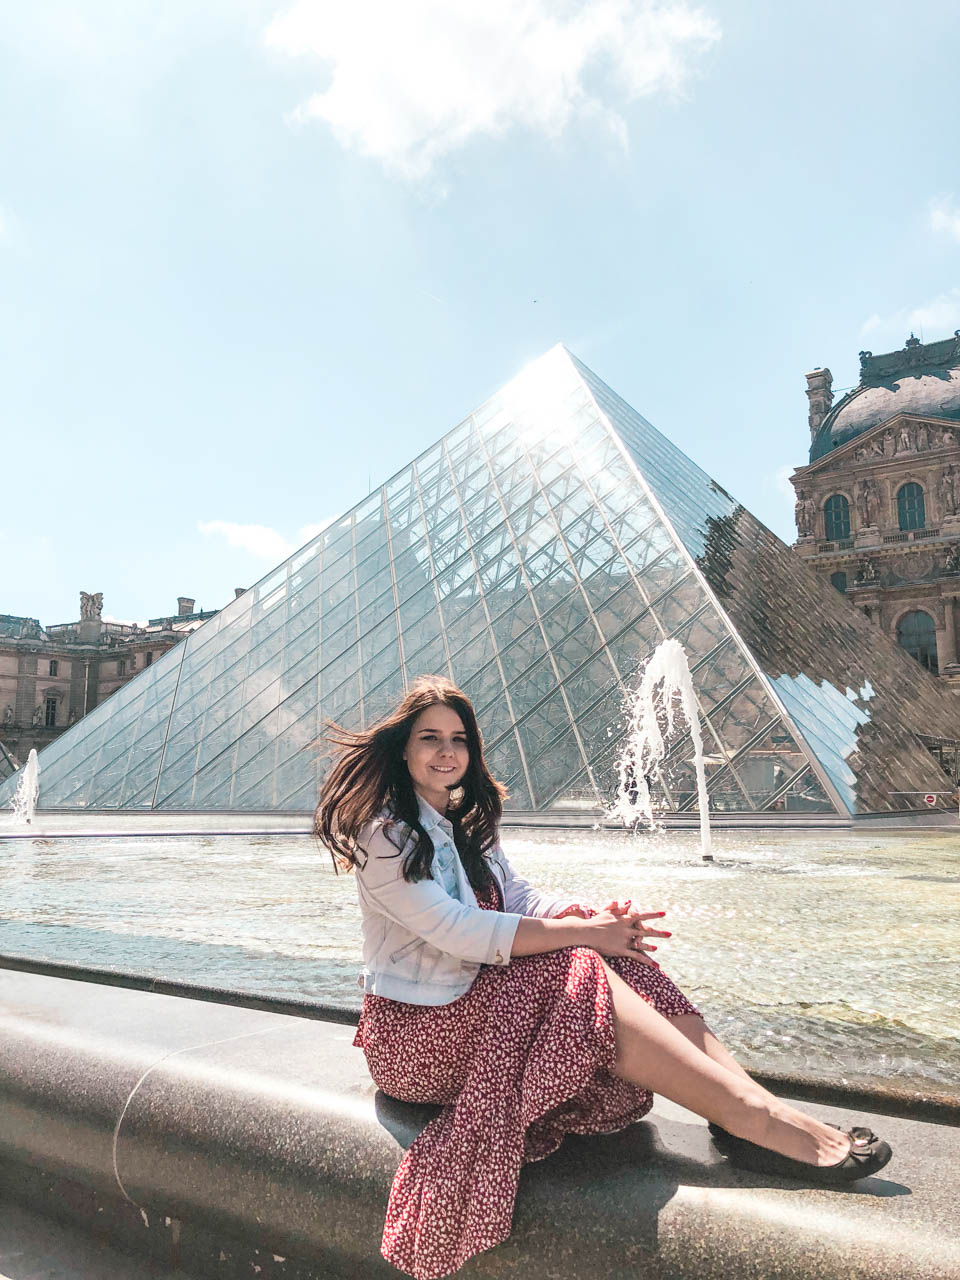 A dark-haired young woman in a denim jacket, a red and white floral dress and black ballet flats sitting on a fountain ledge with the Louvre Pyramid behind her back